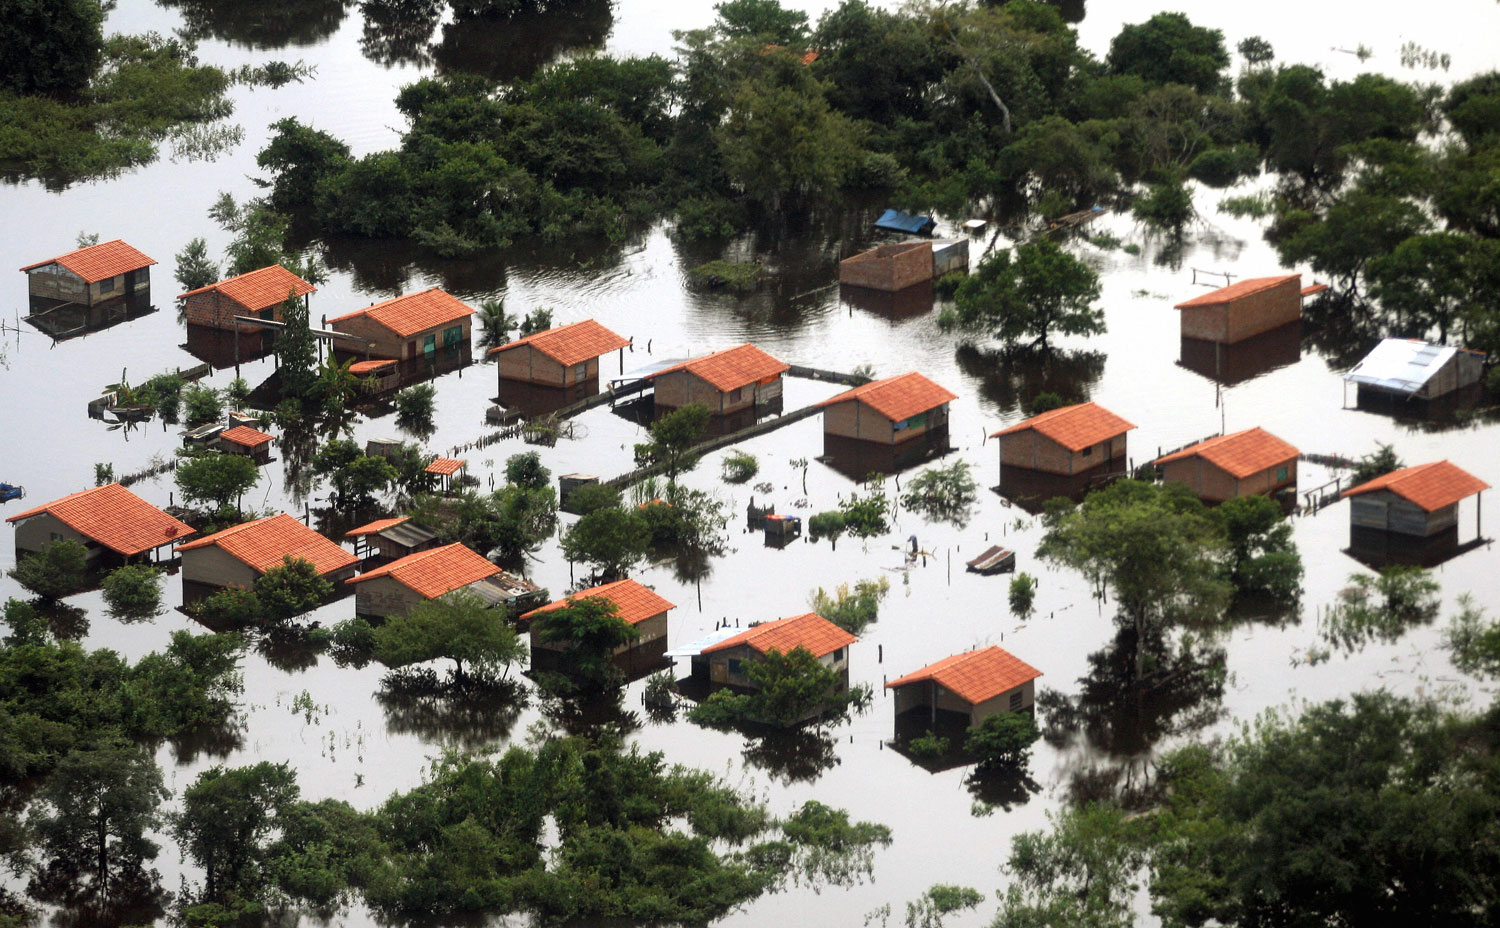 Aerial view of a flooded area in Trinidad, Beni, Bolivia on Feb. 24, 2007. Authorities say two months of rain and floods left 35 people dead, 10 unaccounted for, and affected hundreds of thousands of people. The disaster, blamed on the  El Nino  weather phenomenon, also has caused millions of dollars in material losses.